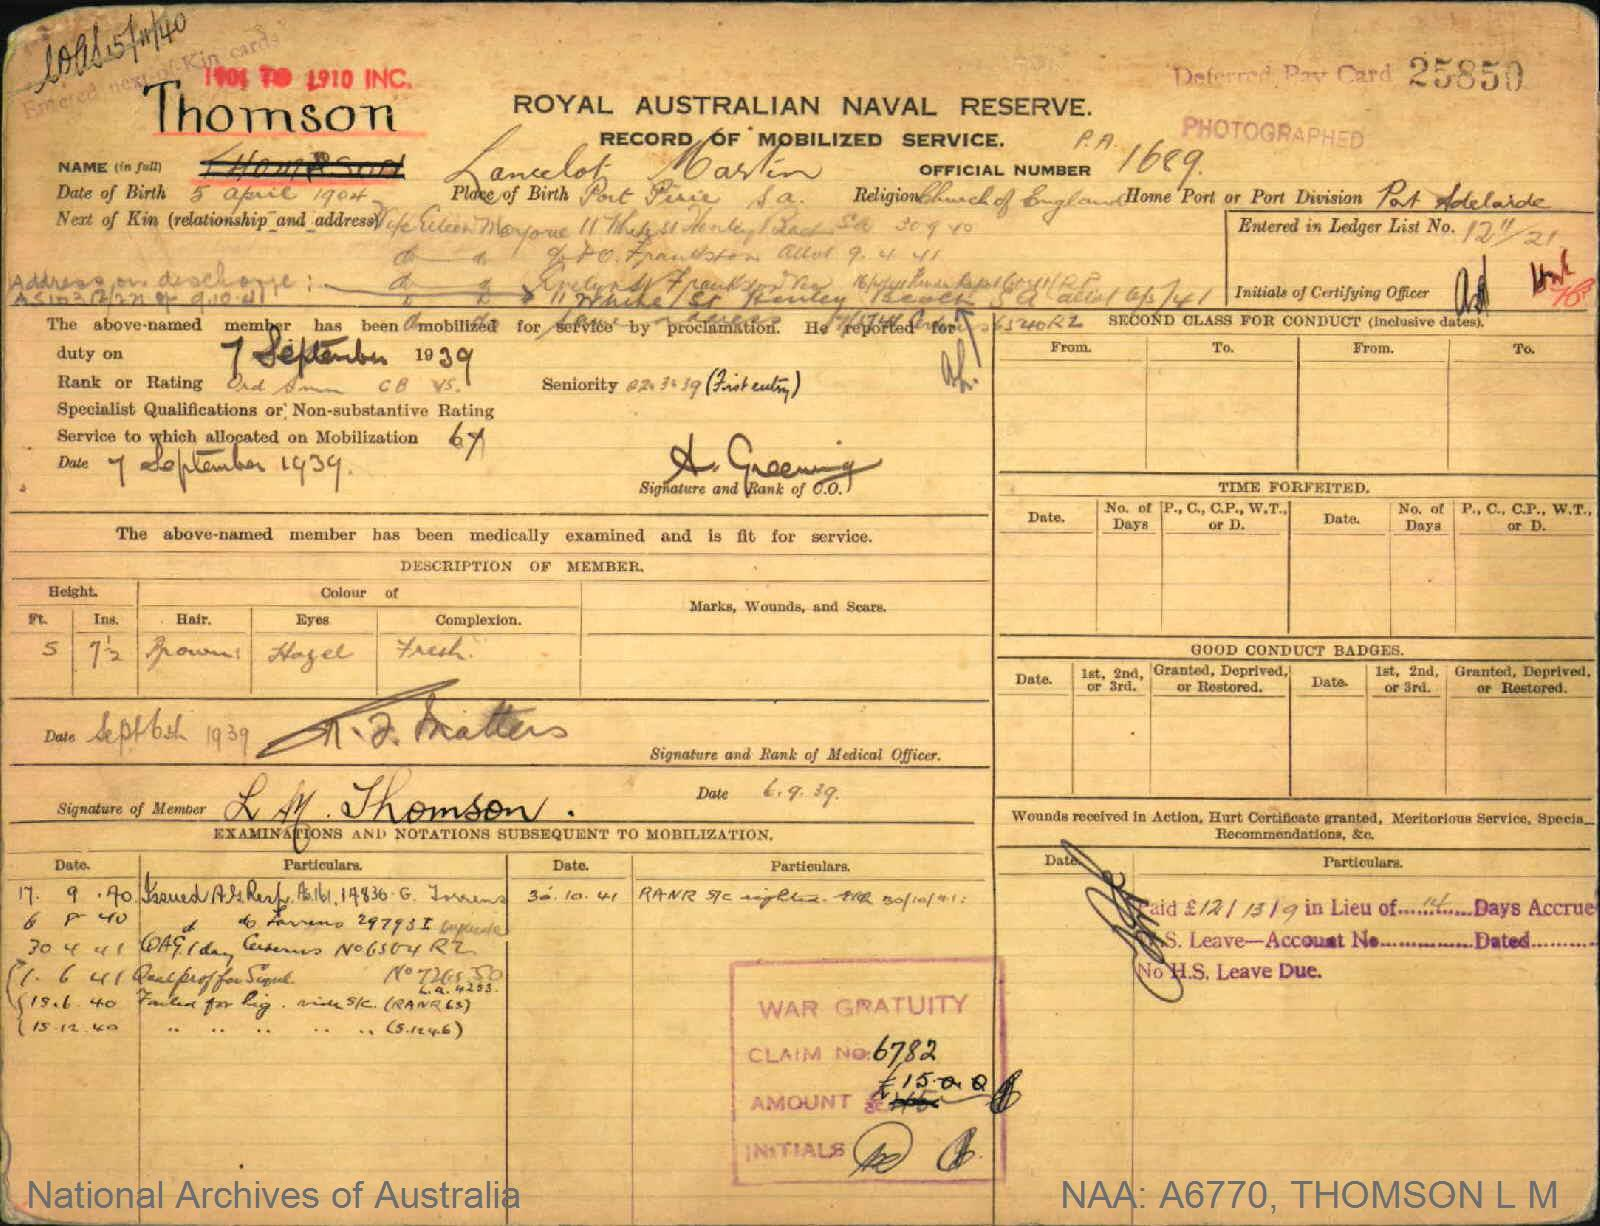 THOMSON LANCELOT MARTIN : Service Number - PA1689 : Date of birth - 05 Apr 1904 : Place of birth - PORT PIRIE SA : Place of enlistment - PORT ADELAIDE : Next of Kin - EILEEN